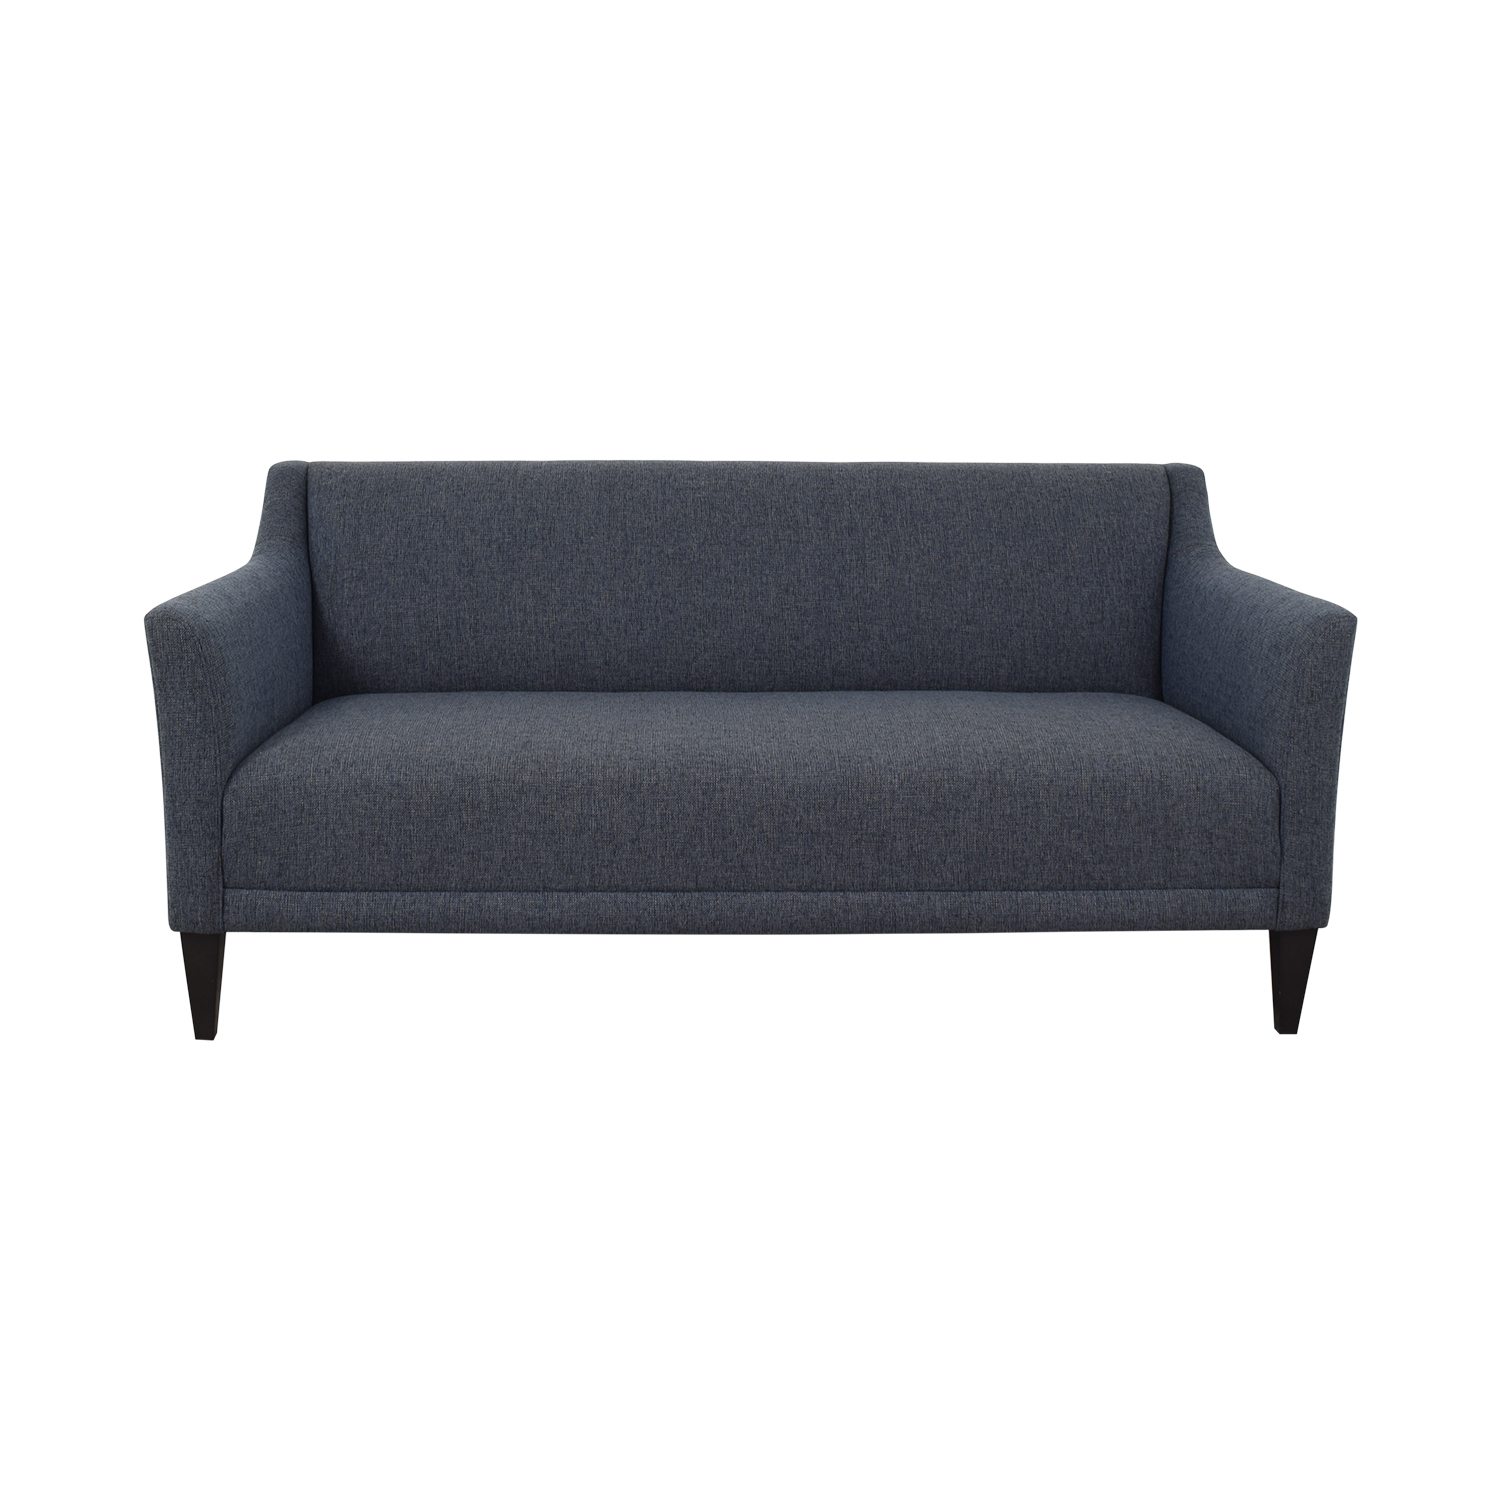 buy Crate & Barrel Margot II Loveseat Crate & Barrel Sofas